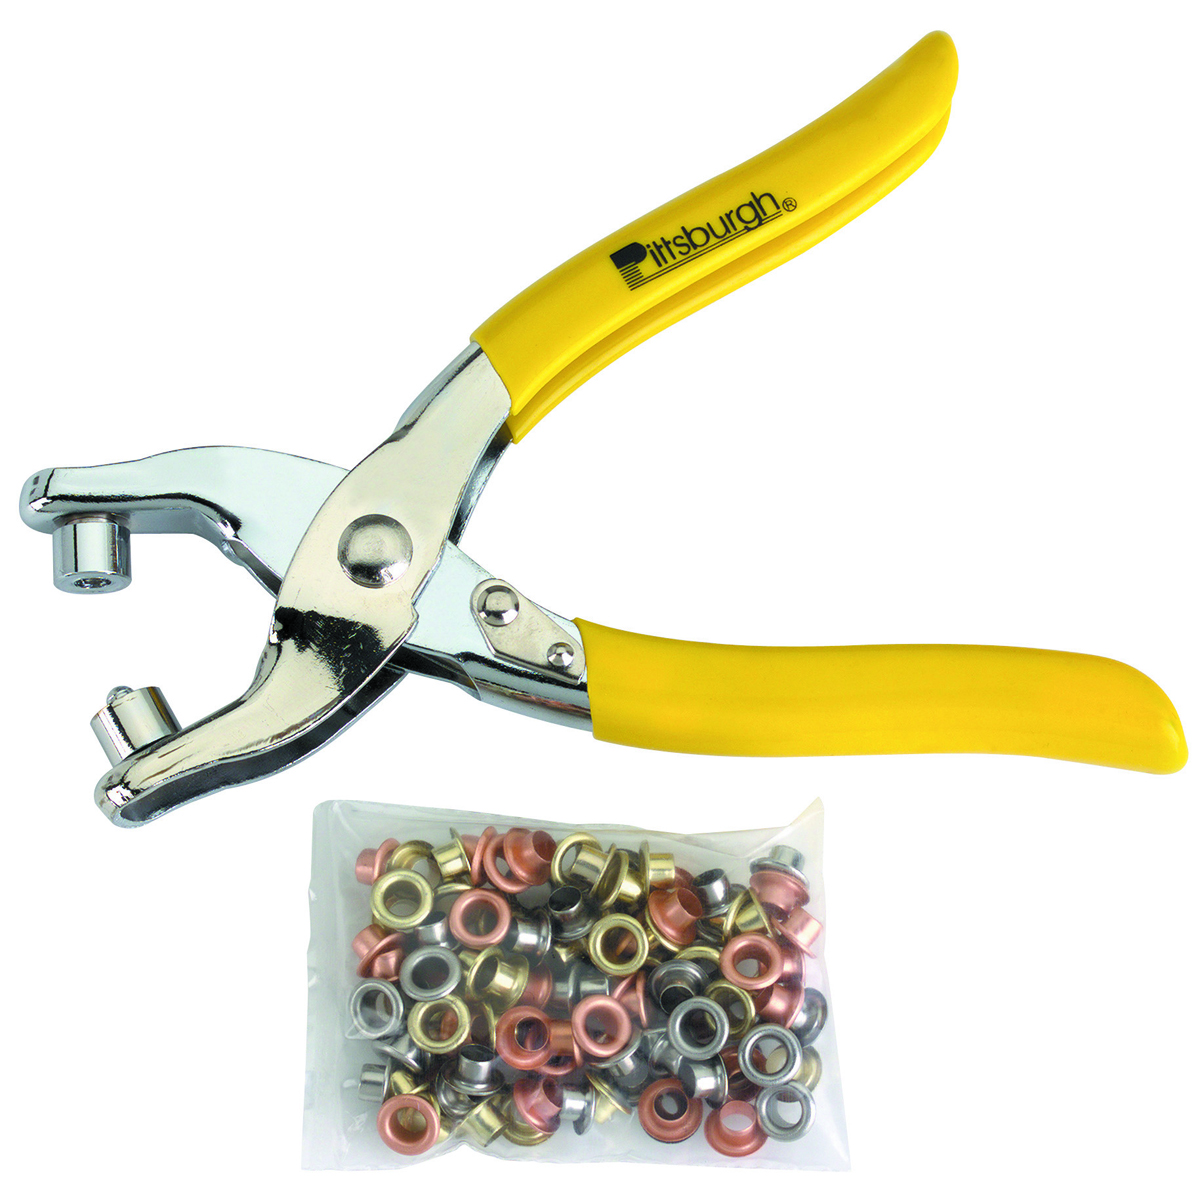 PITTSBURGH Grommet Pliers with 100 Grommets - Item 66707